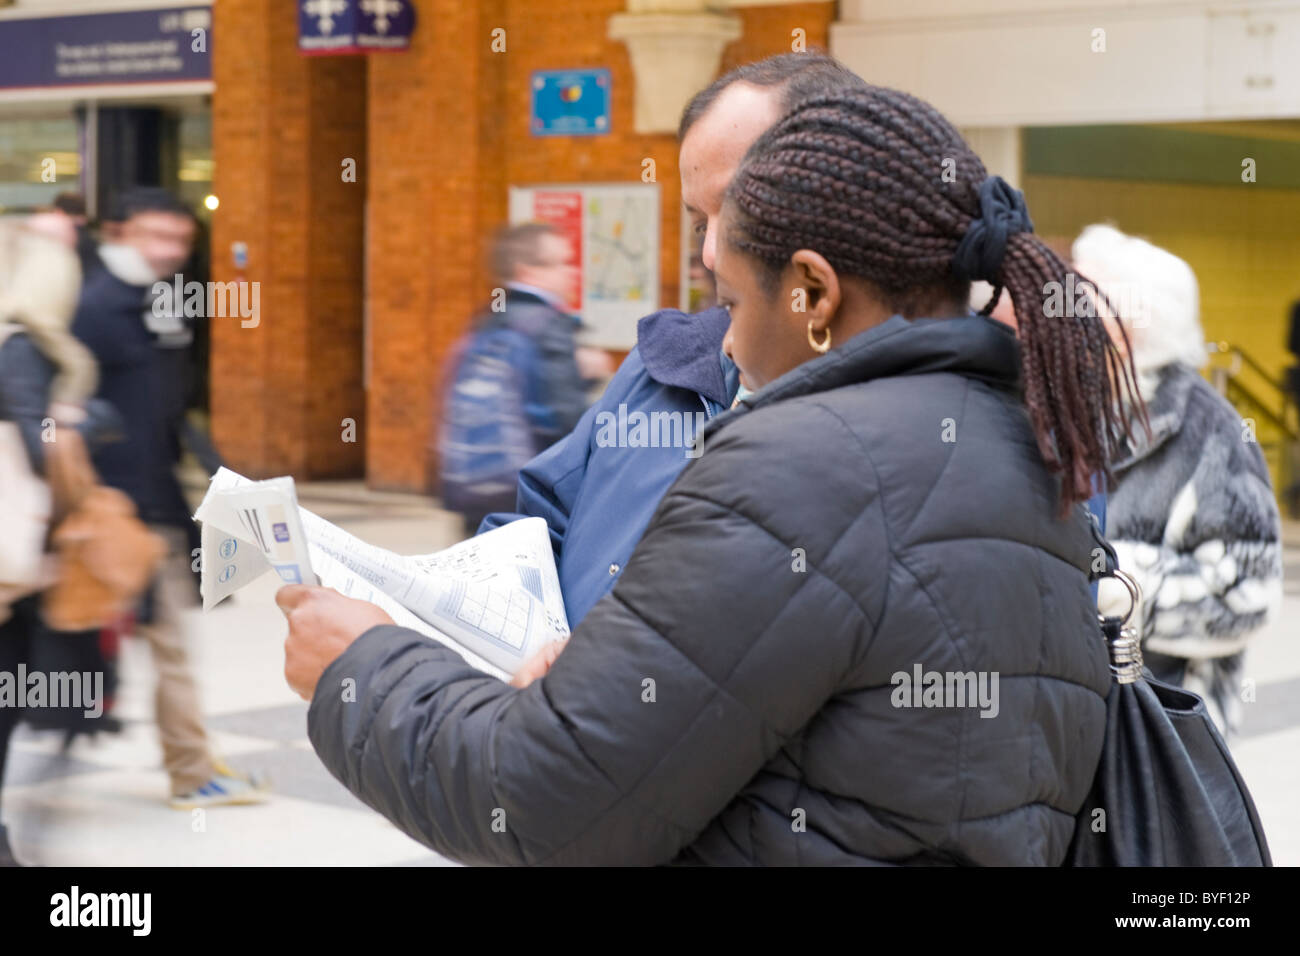 London , Liverpool Street Station , pretty Afro Caribbean young girl with braided or beaded plaited hair asking - Stock Image